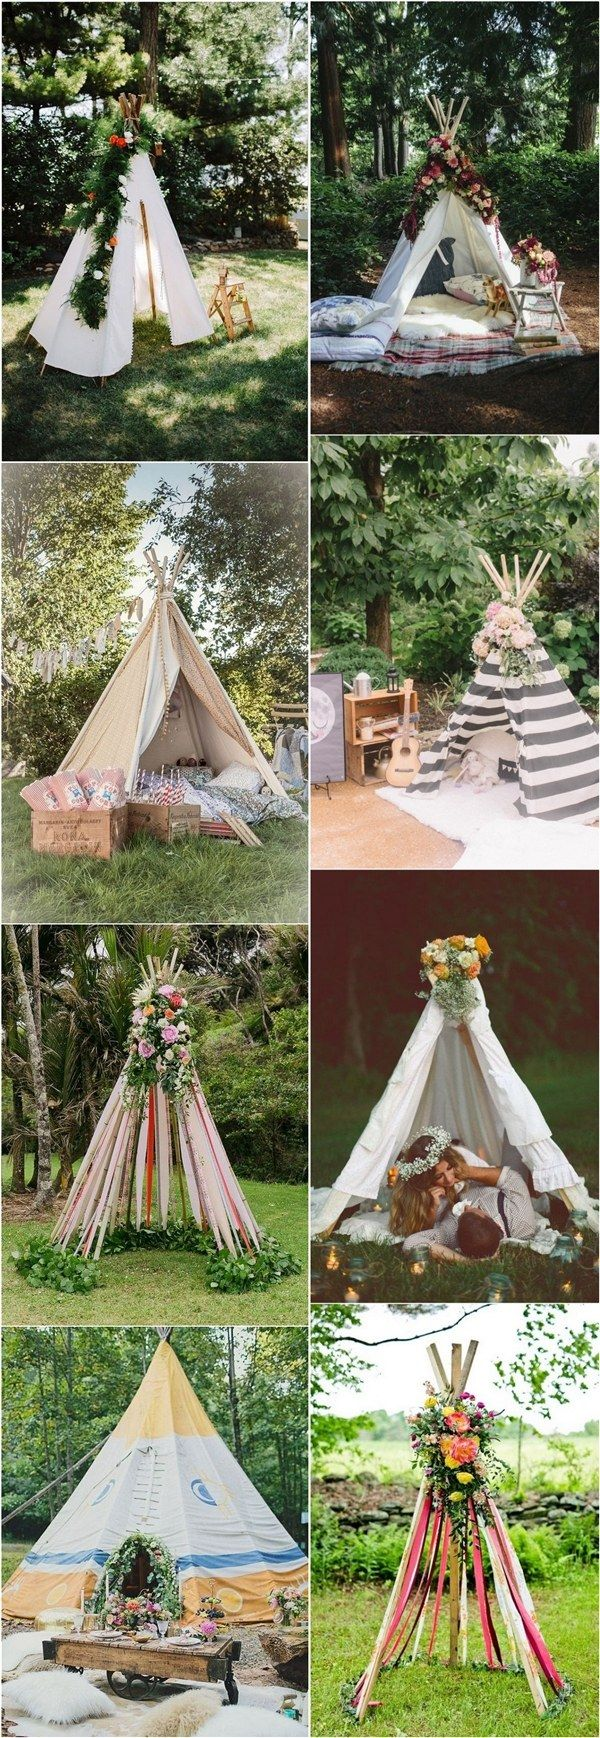 Boho Tipi Wedding Barckdrops & Arches / http://www.deerpearlflowers.com/bohemian-teepee-wedding-ideas/